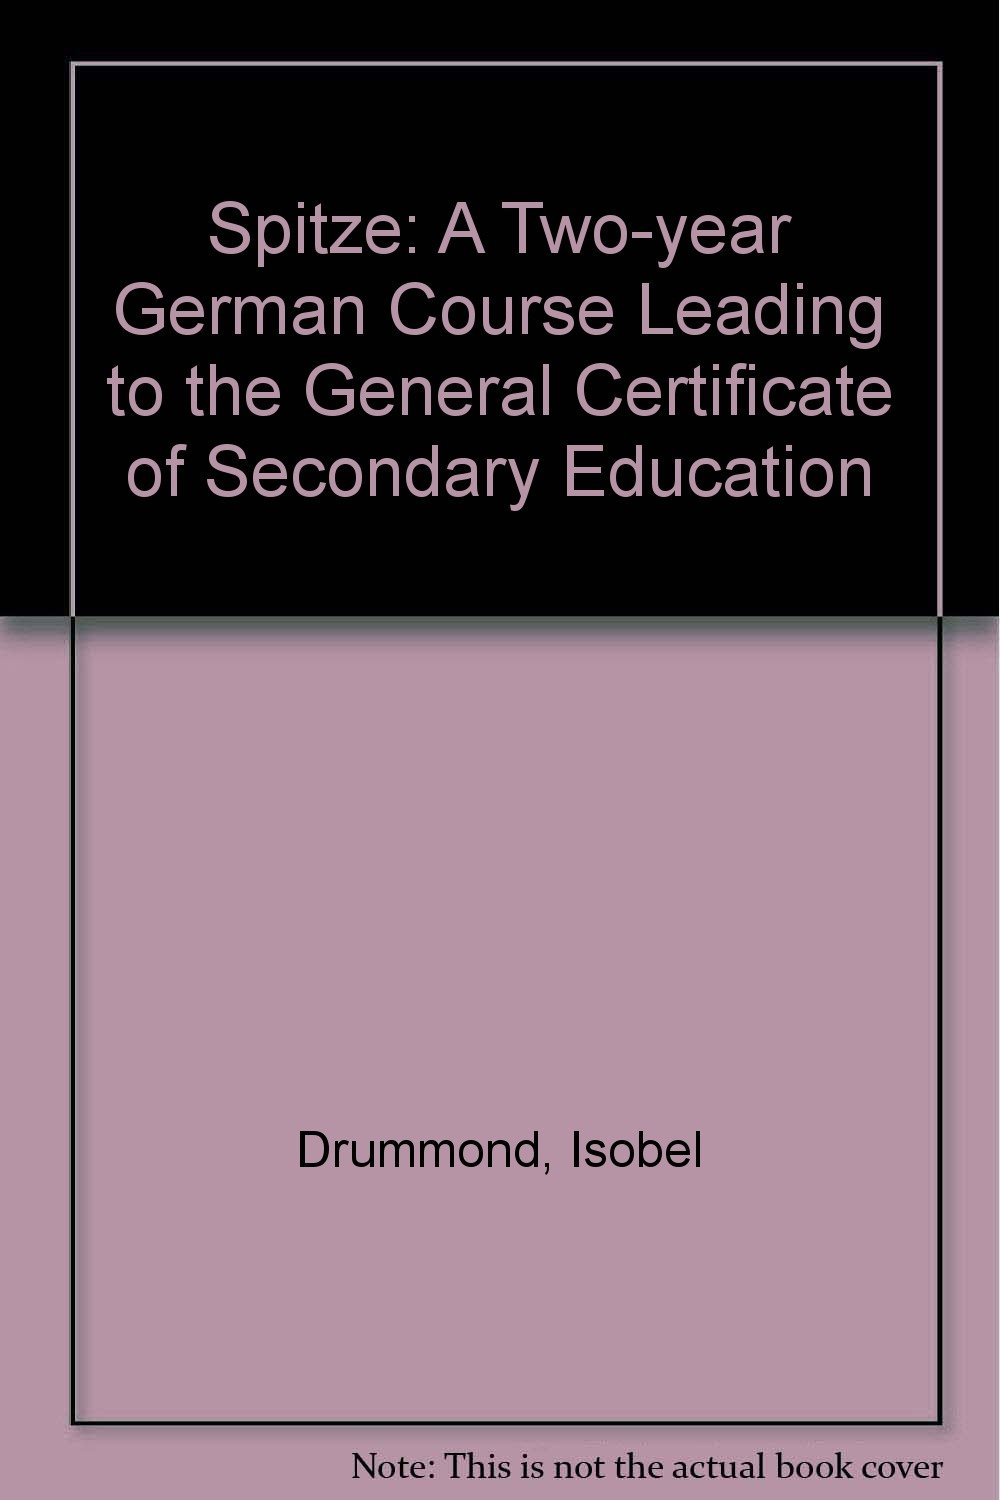 Spitze: A Two-year German Course Leading to the General Certificate of Secondary Education